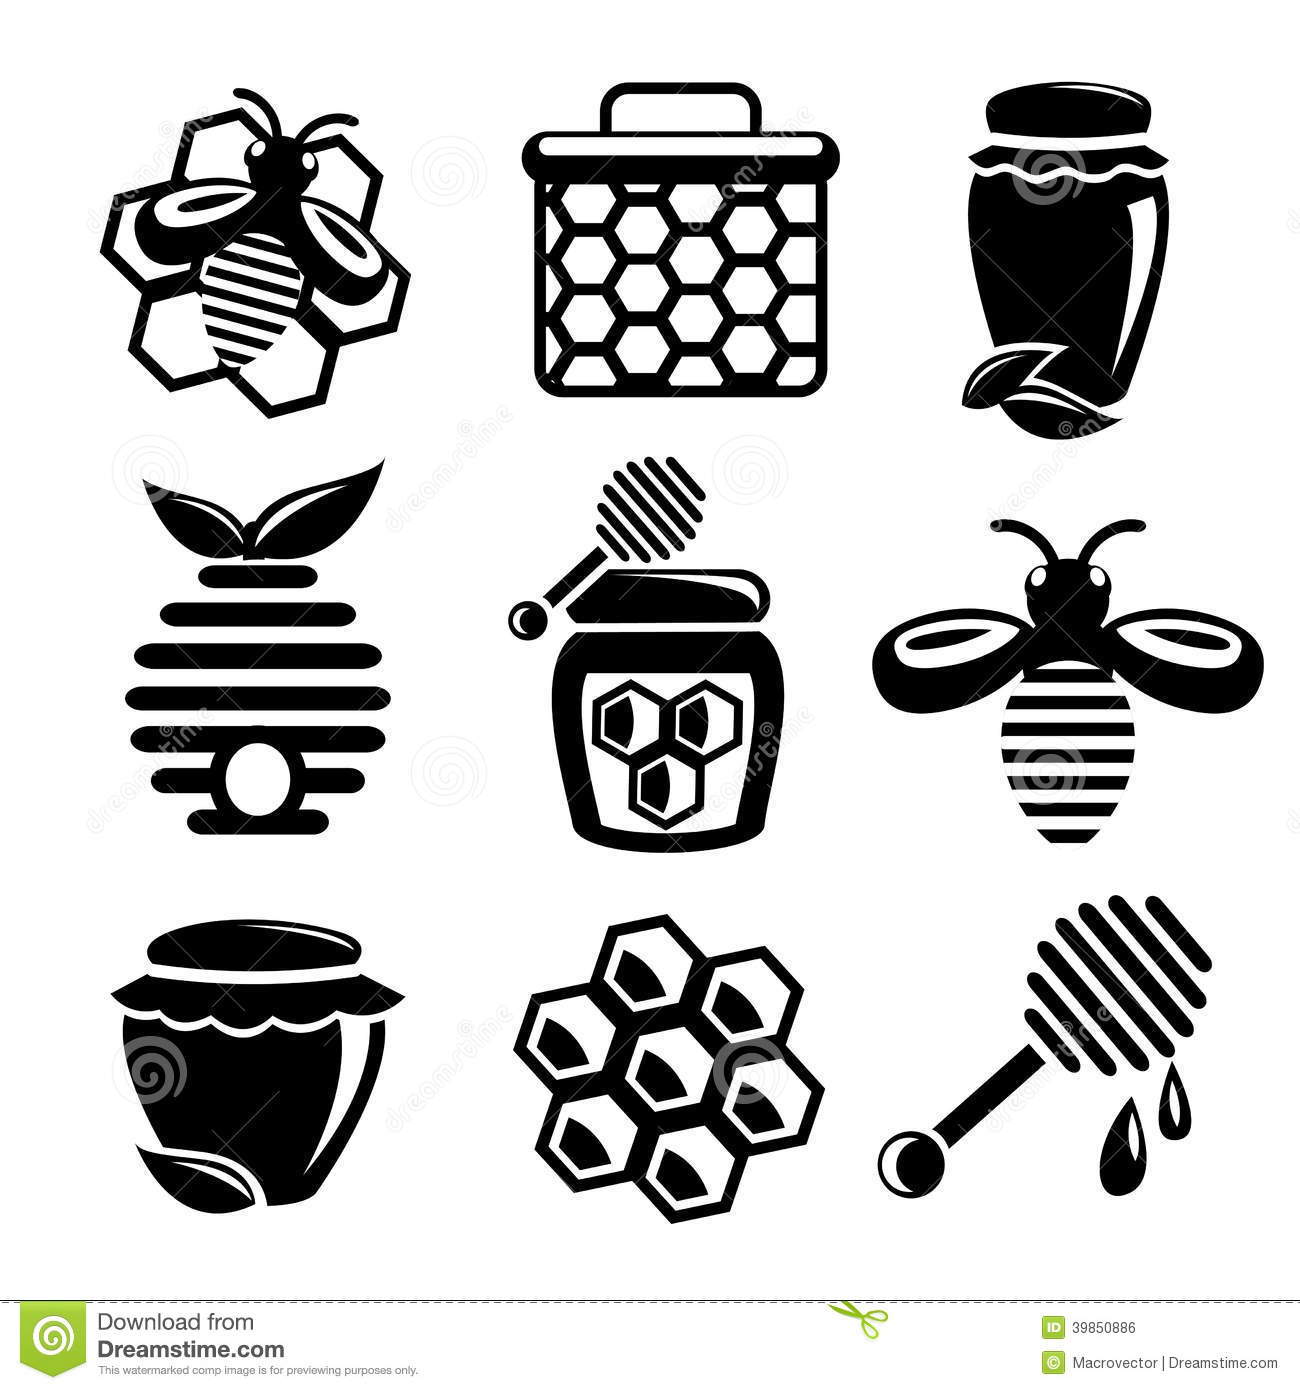 Honey icons set stock vector. Illustration of concept